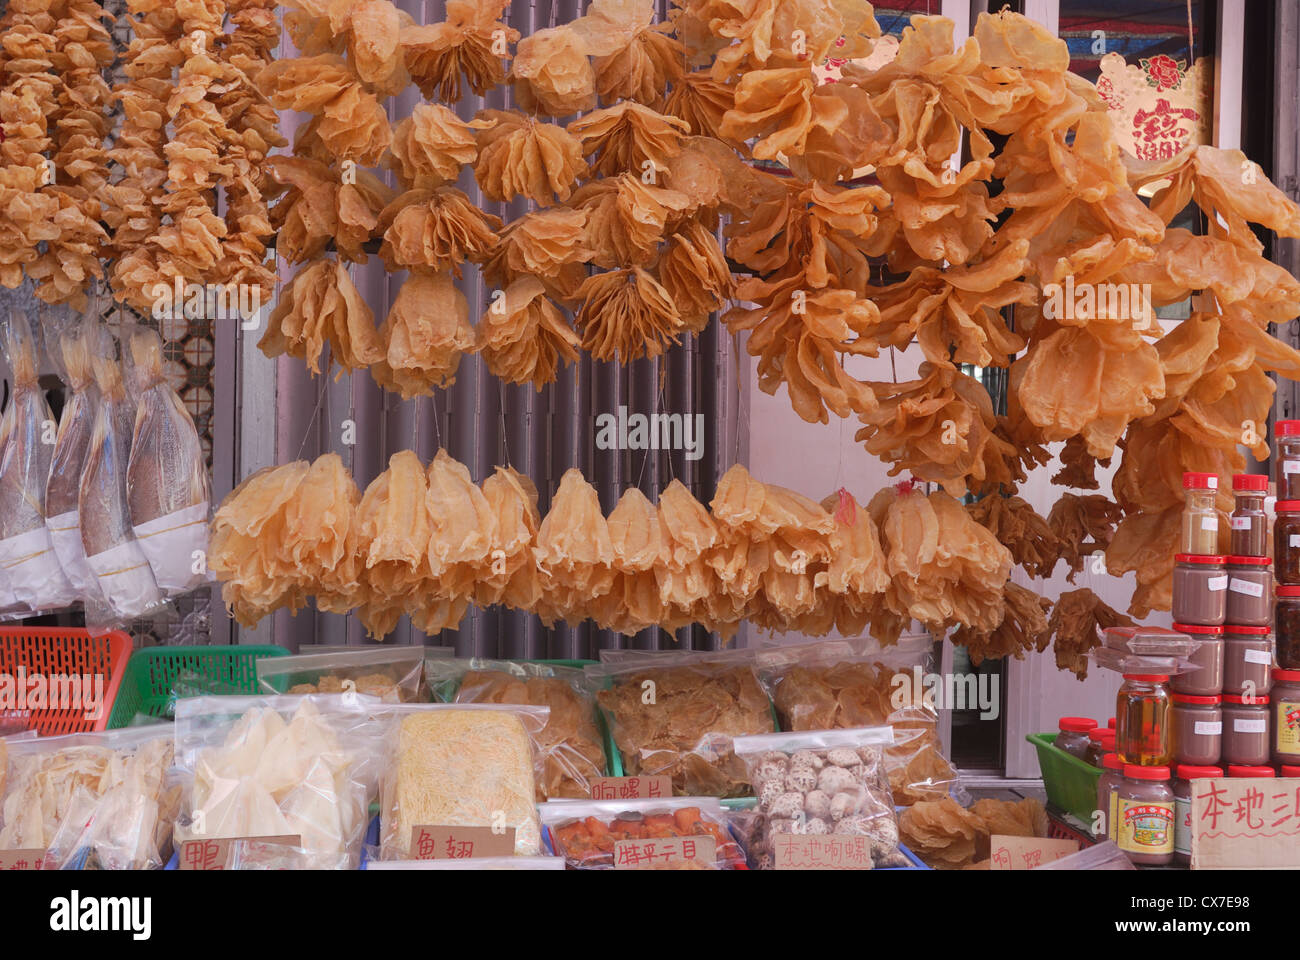 Dried fish for sale at an outdoor market in Tai O Lantau Island China. Stock Photo